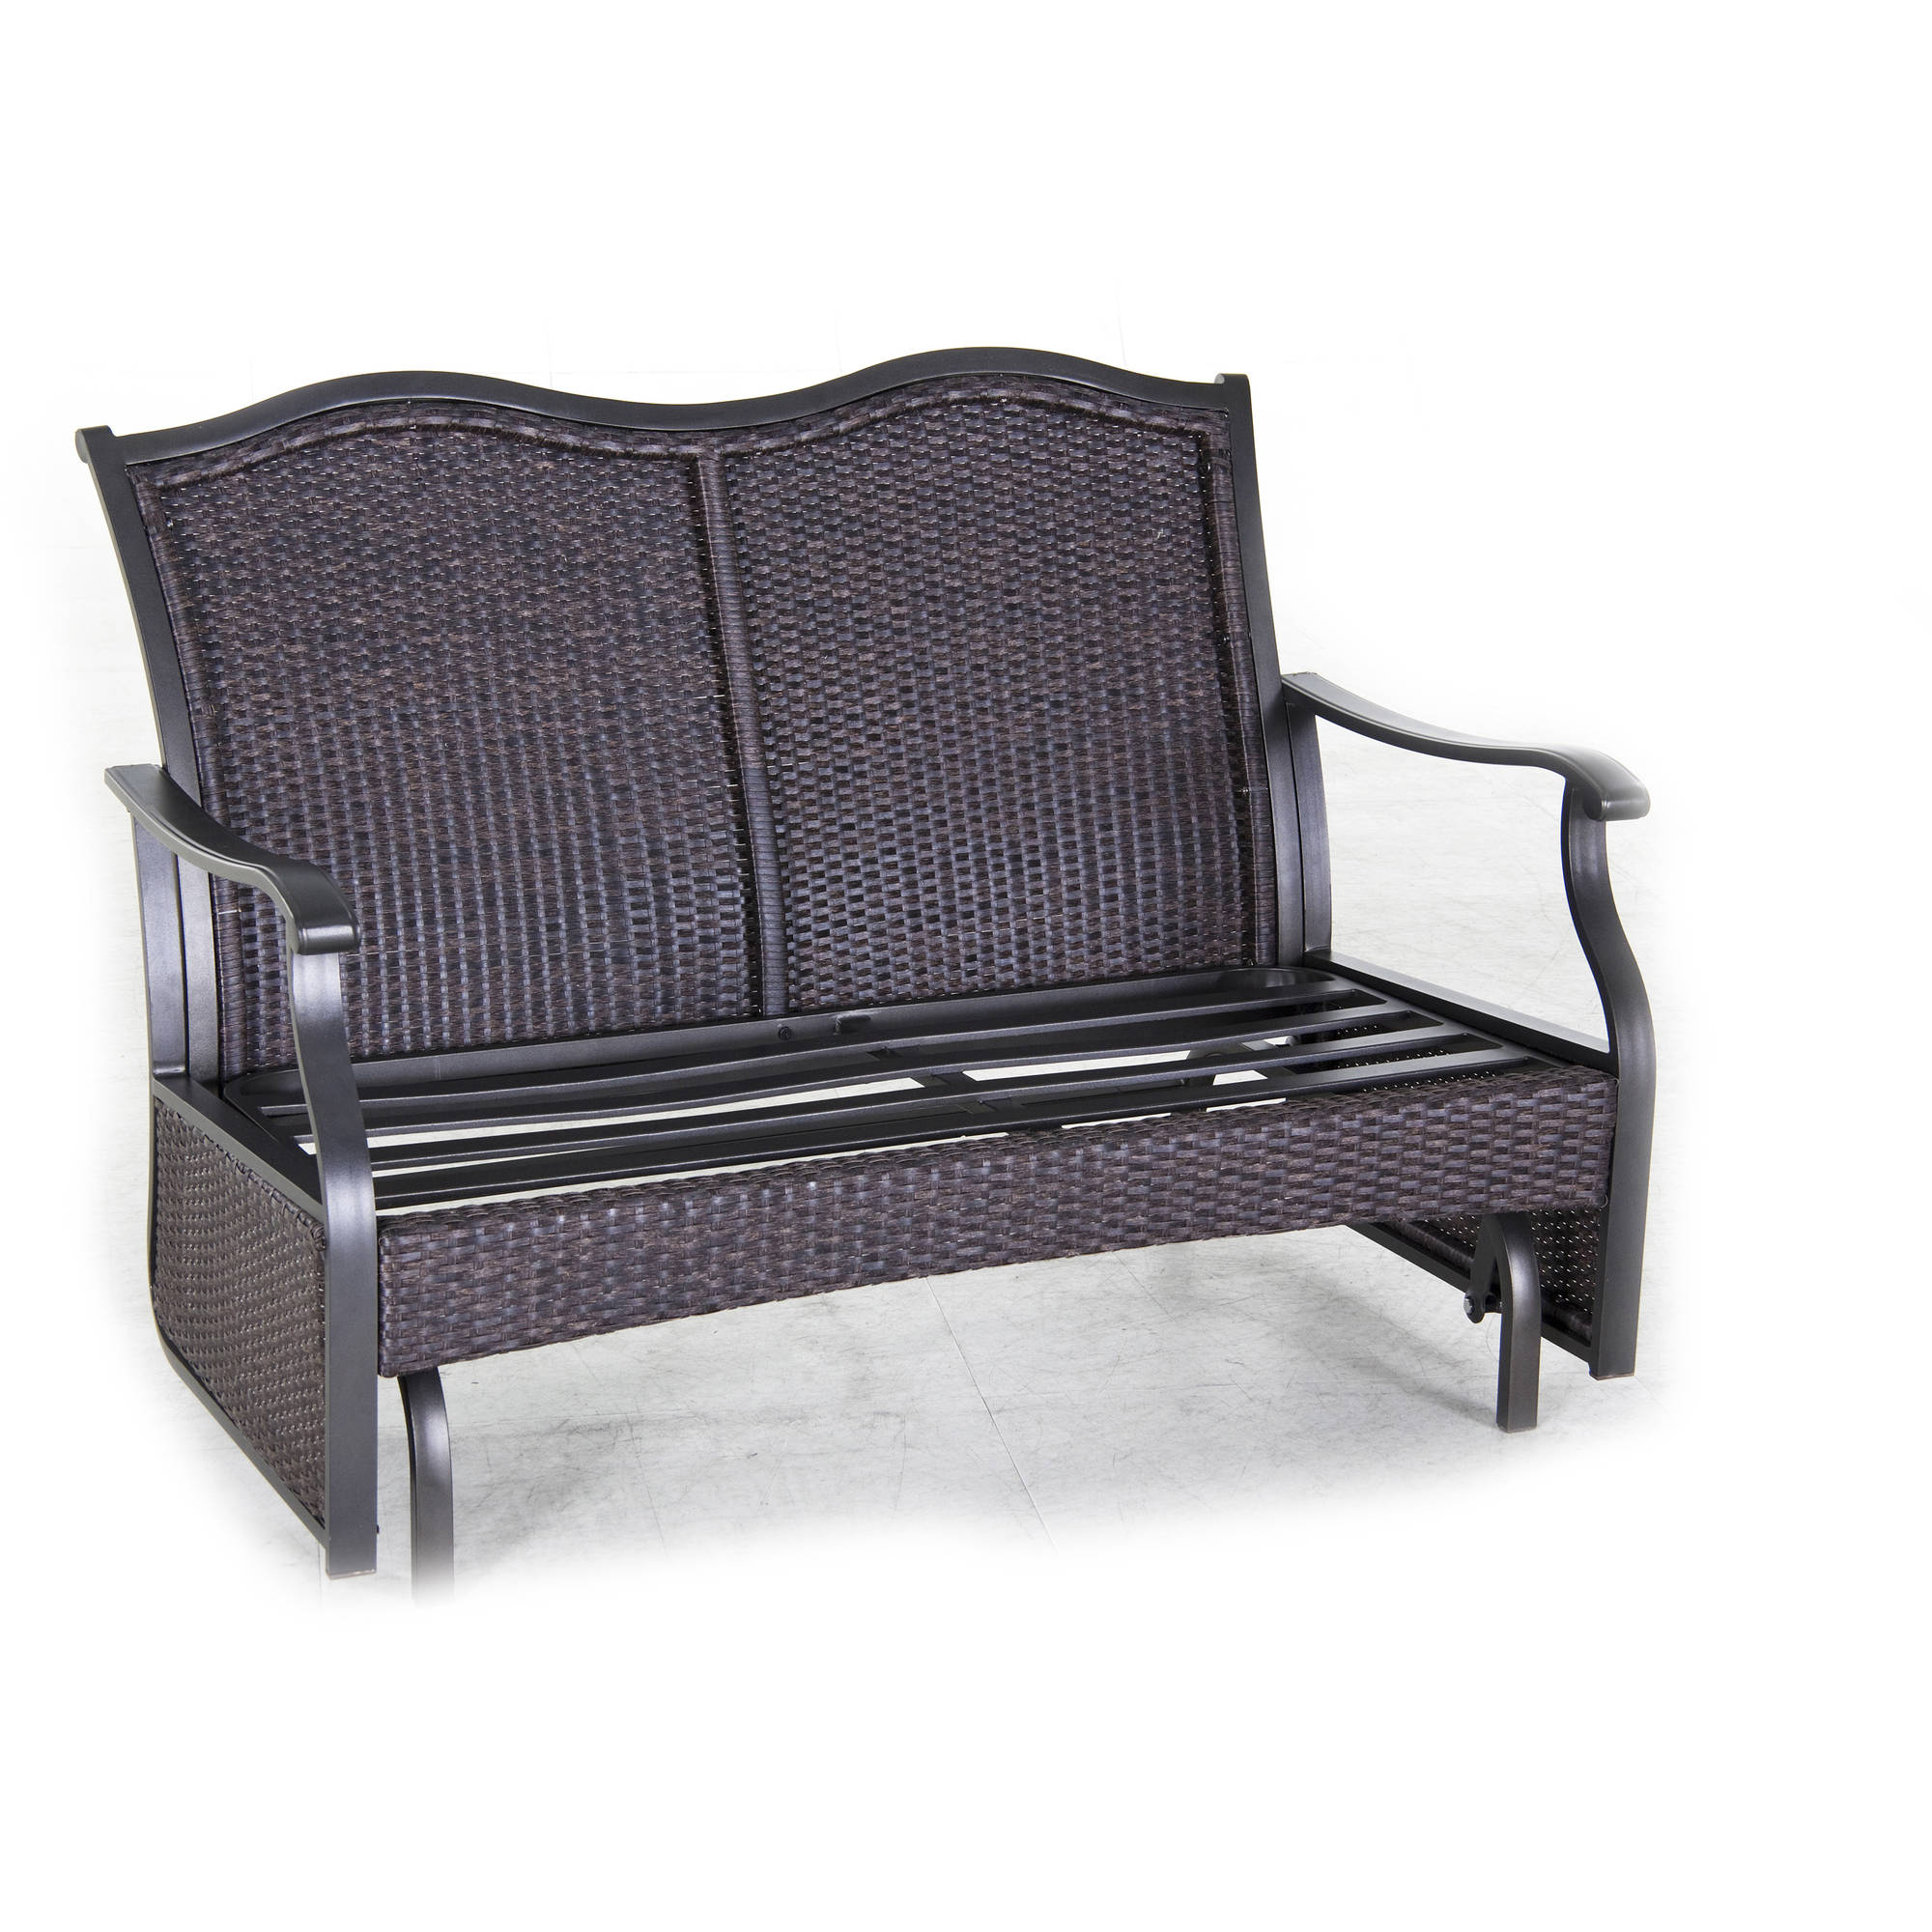 maintenance poly brown bench weatherwood gliders free glider lawn porch chestnut furniture shipping plain outdoor